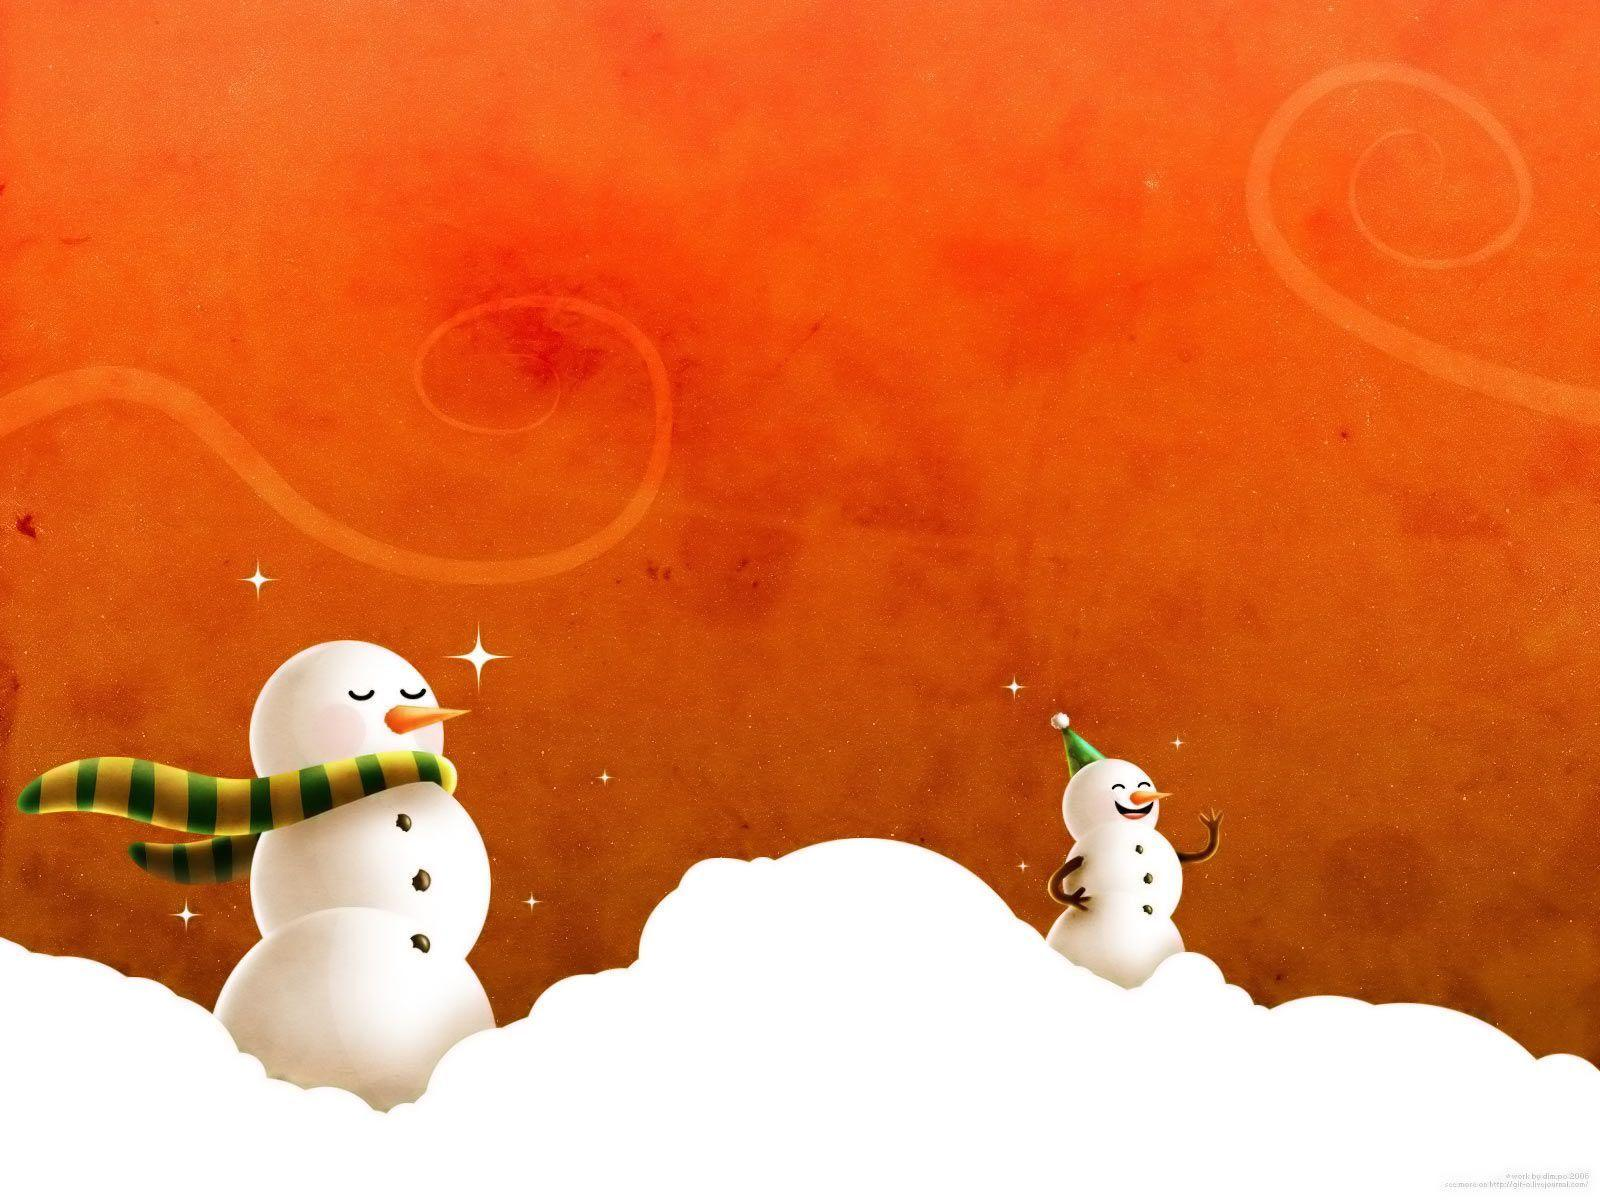 Desktop Wallpapers · Gallery · Miscellaneous · Christmas Snow Man